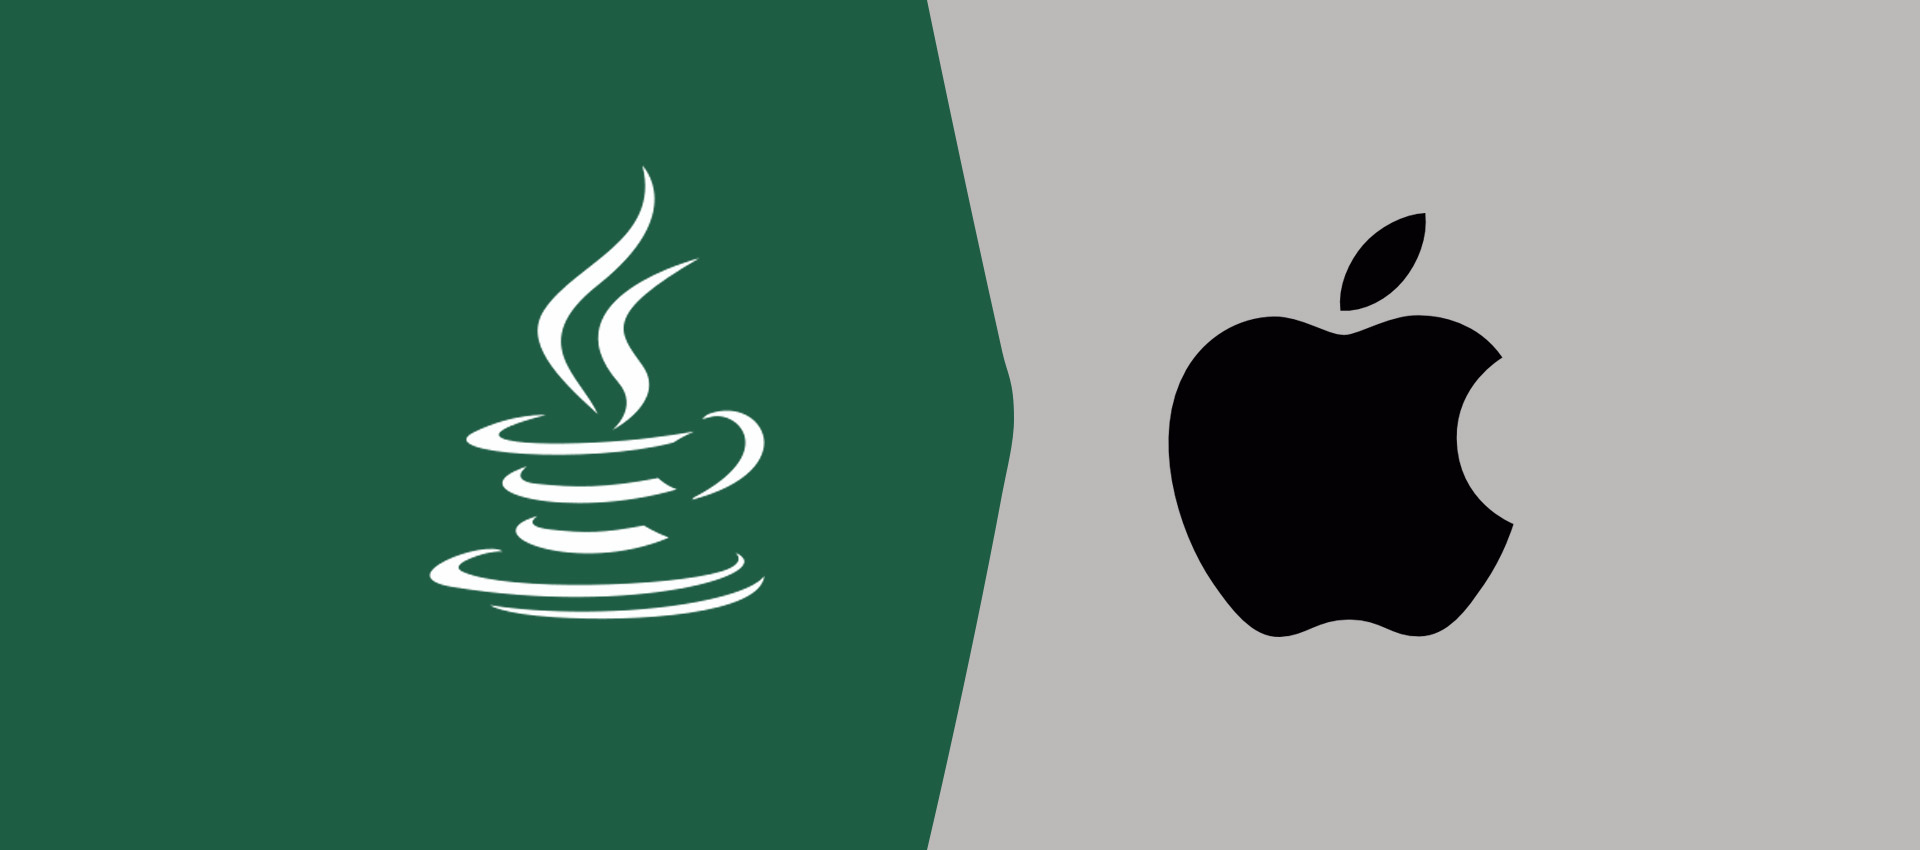 How To Install Java 17 On Mac